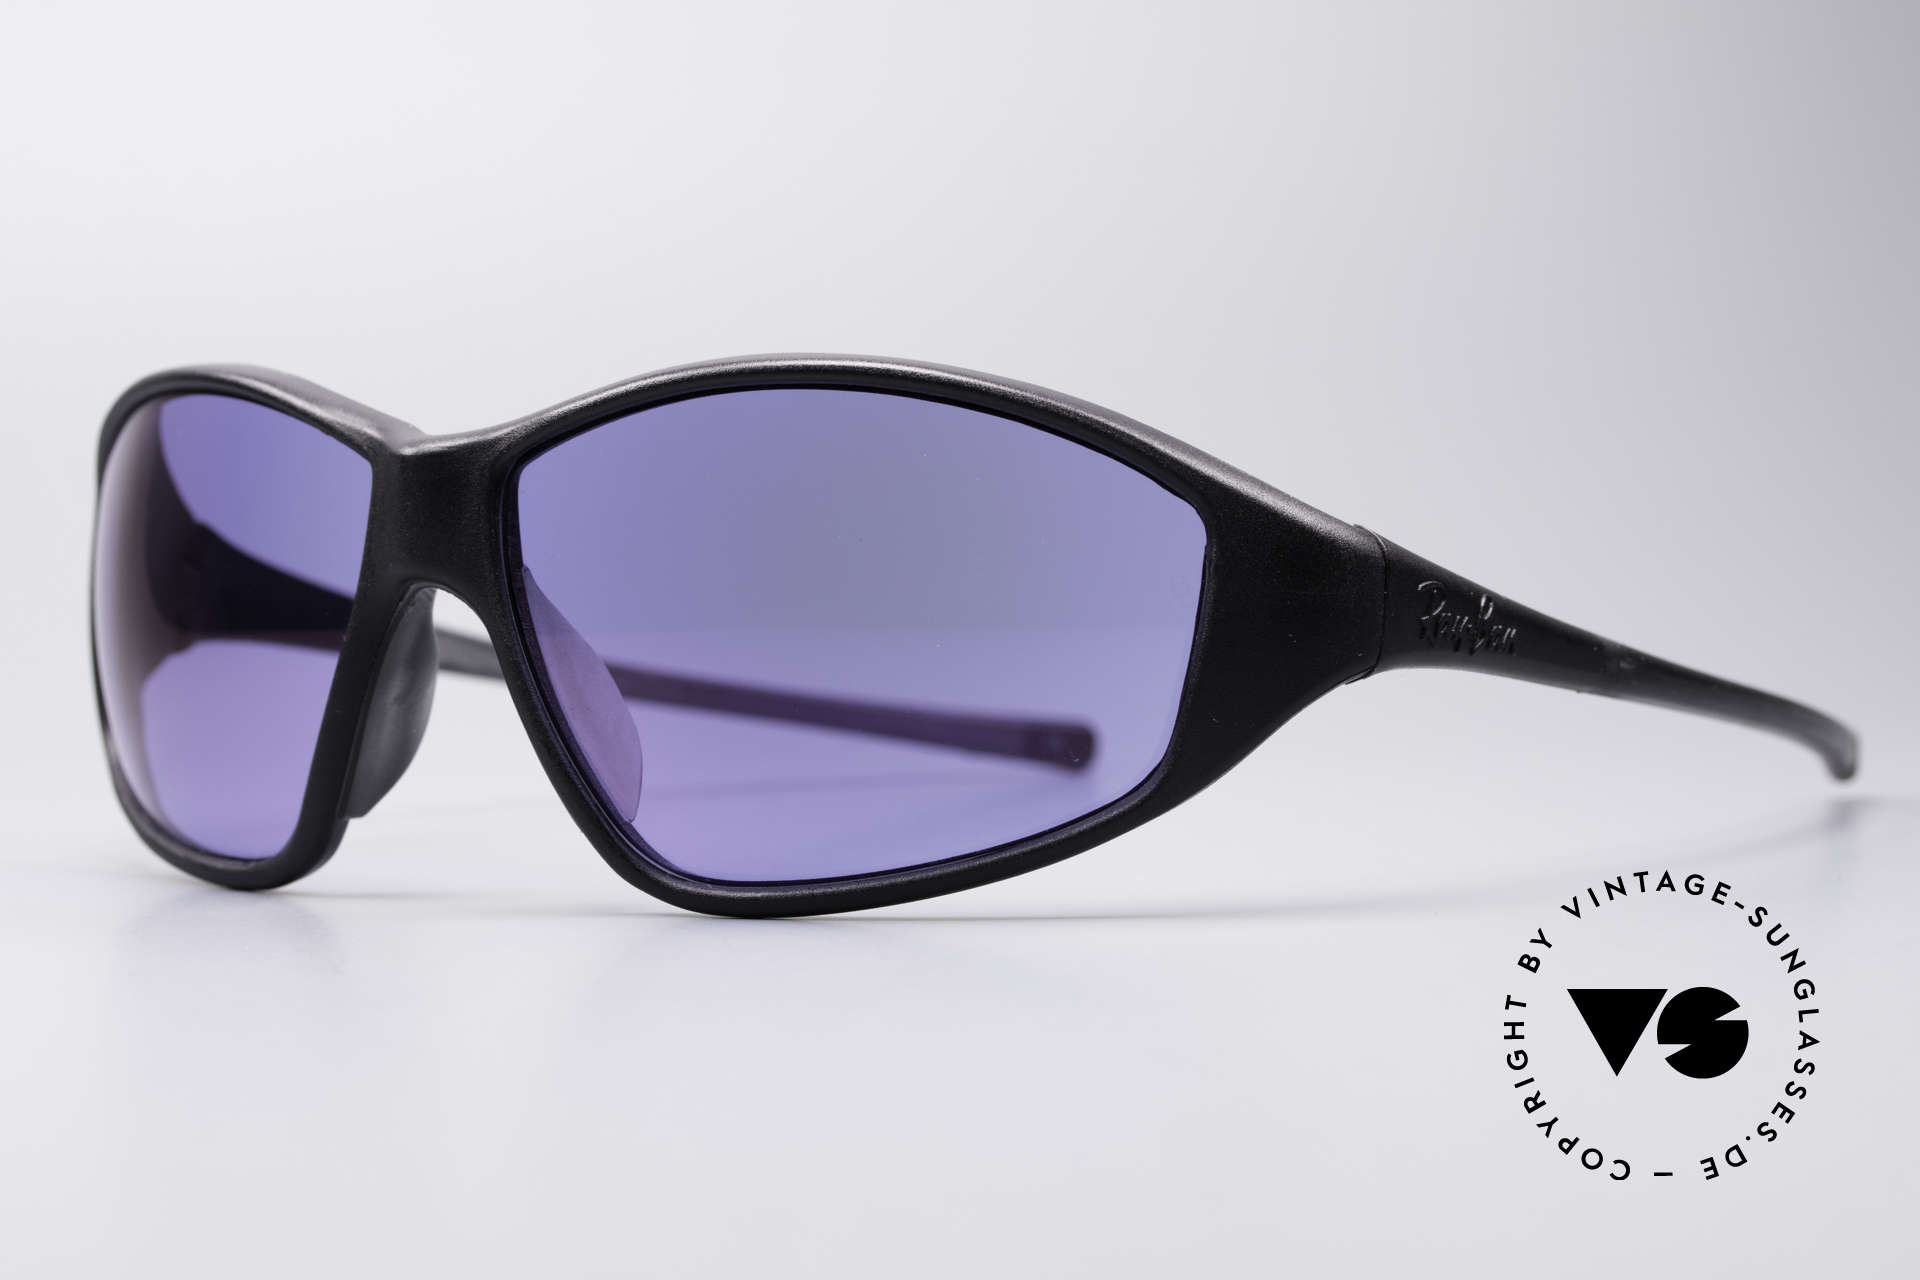 Ray Ban B0005 Callaway Vintage Golf Sunglasses, ACE Bausch&Lomb lenses: feature high optical precision, Made for Men